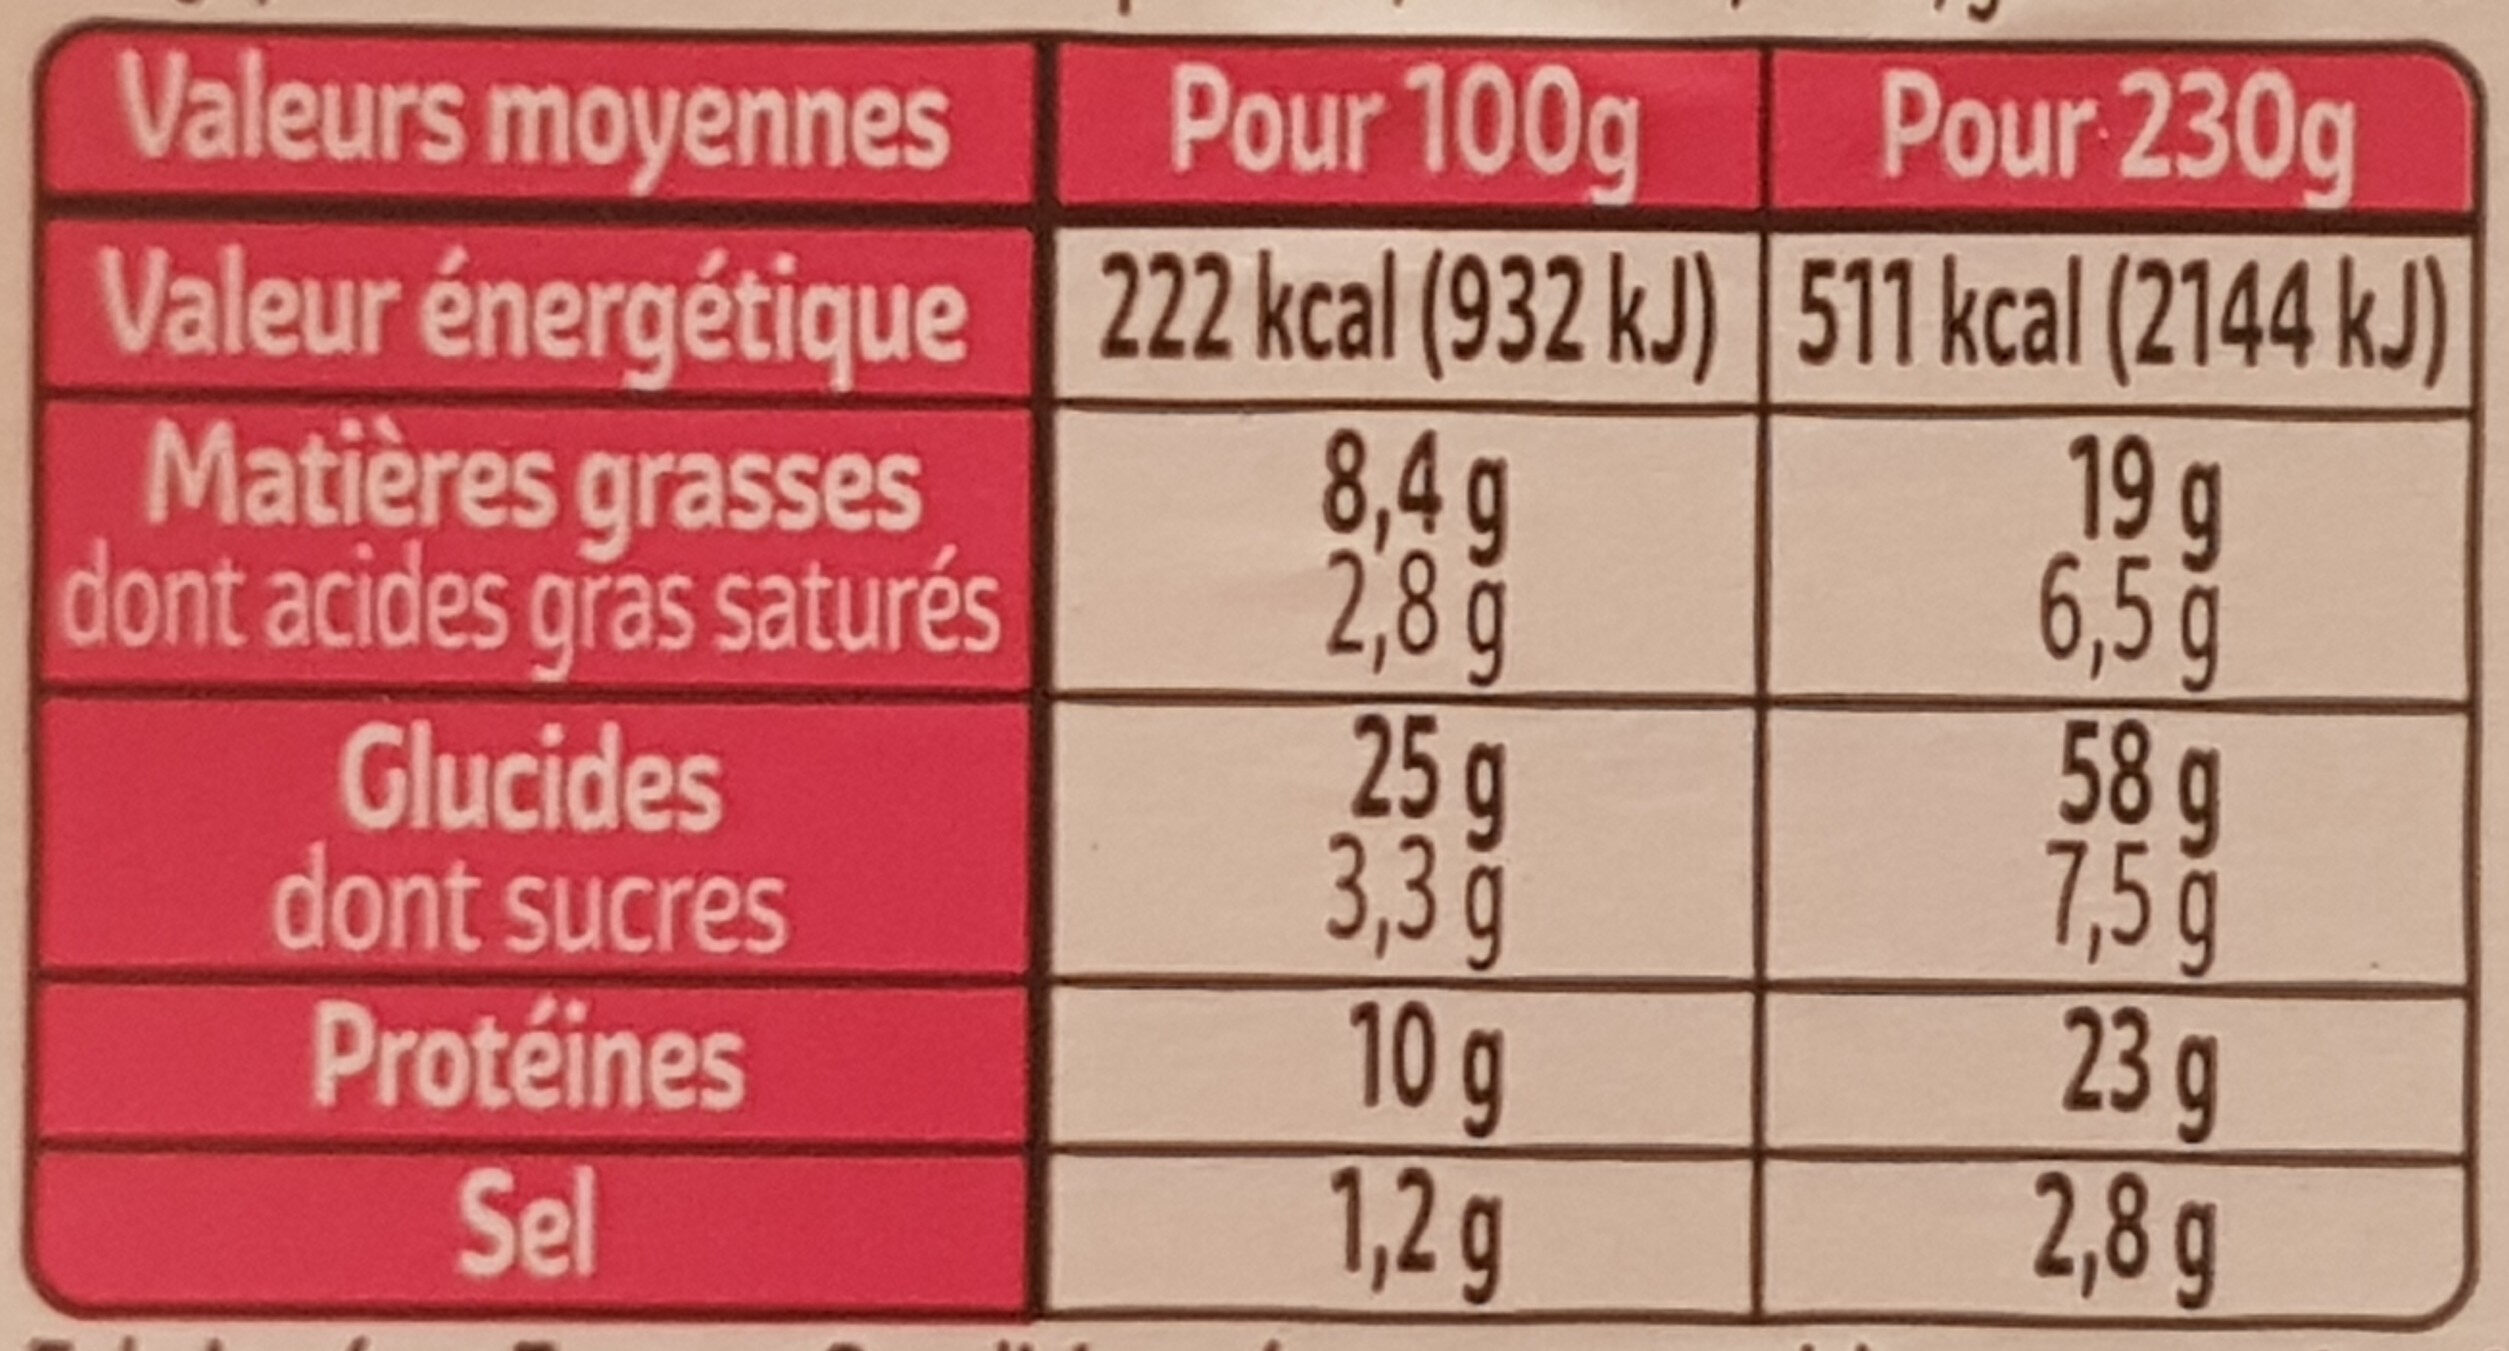 XXL Pain complet Jambon Emmental Salade - Nutrition facts - fr